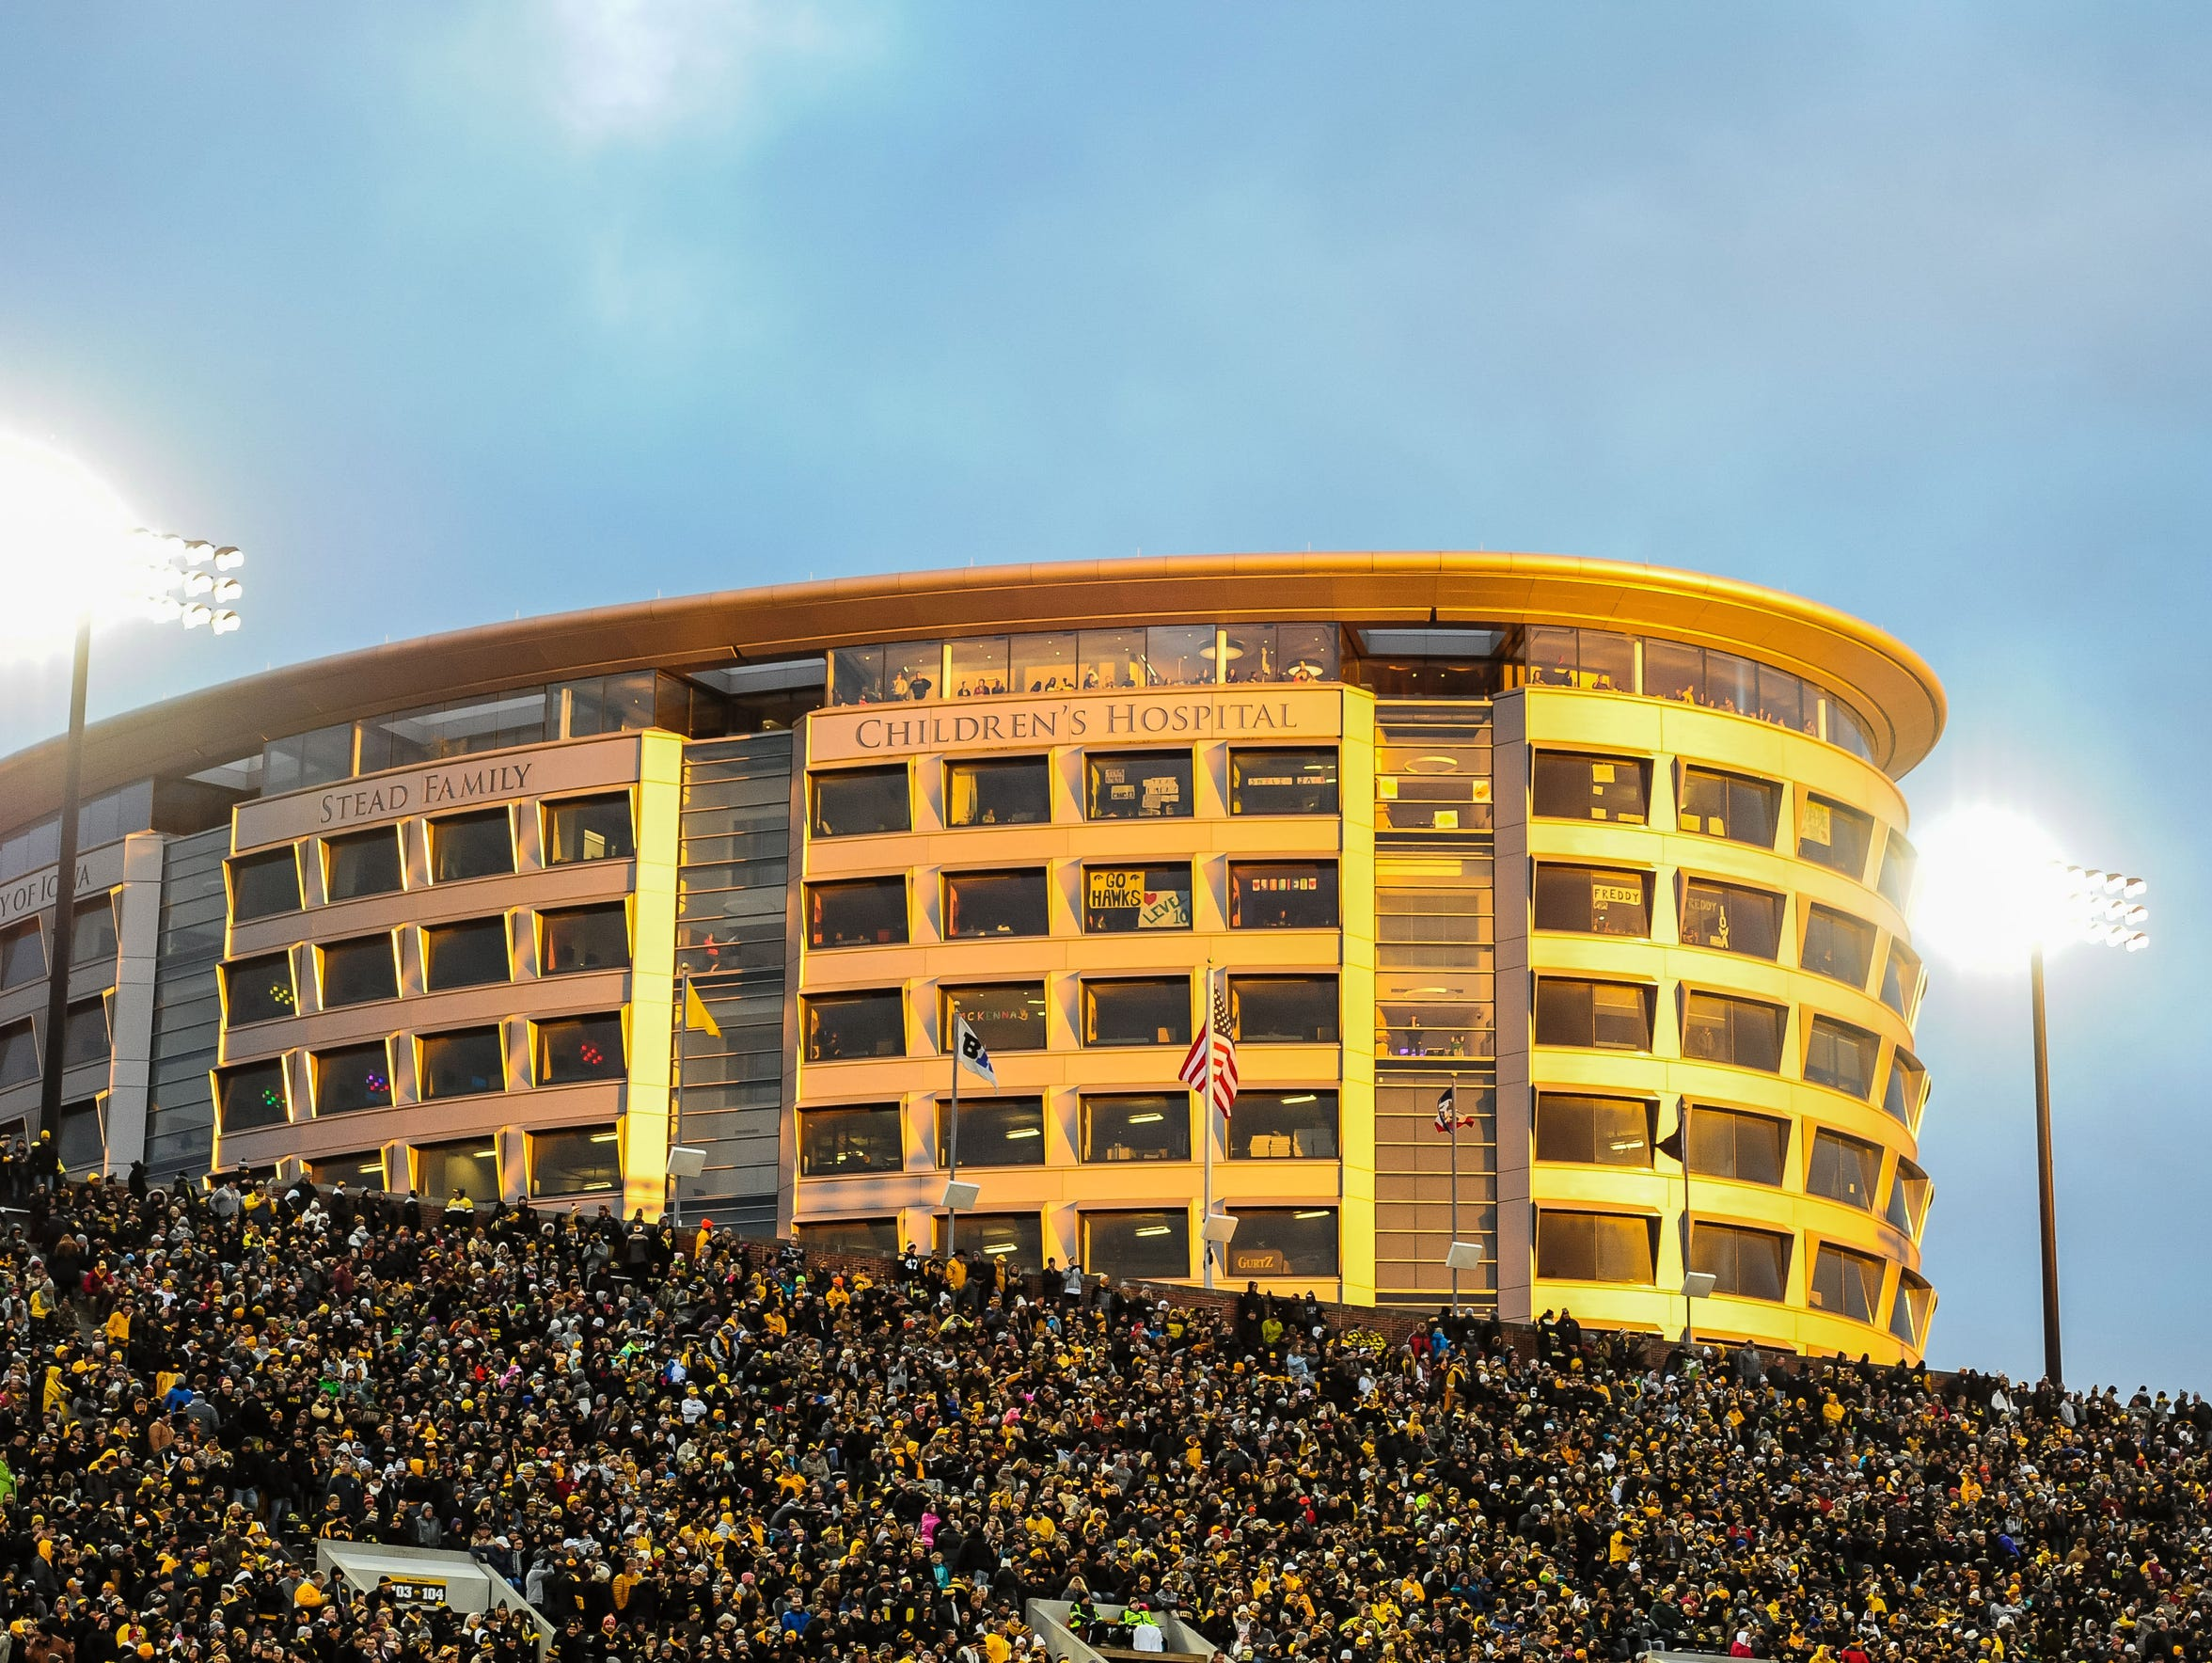 The Iowa Children's Hospital overlooks Kinnick Stadium